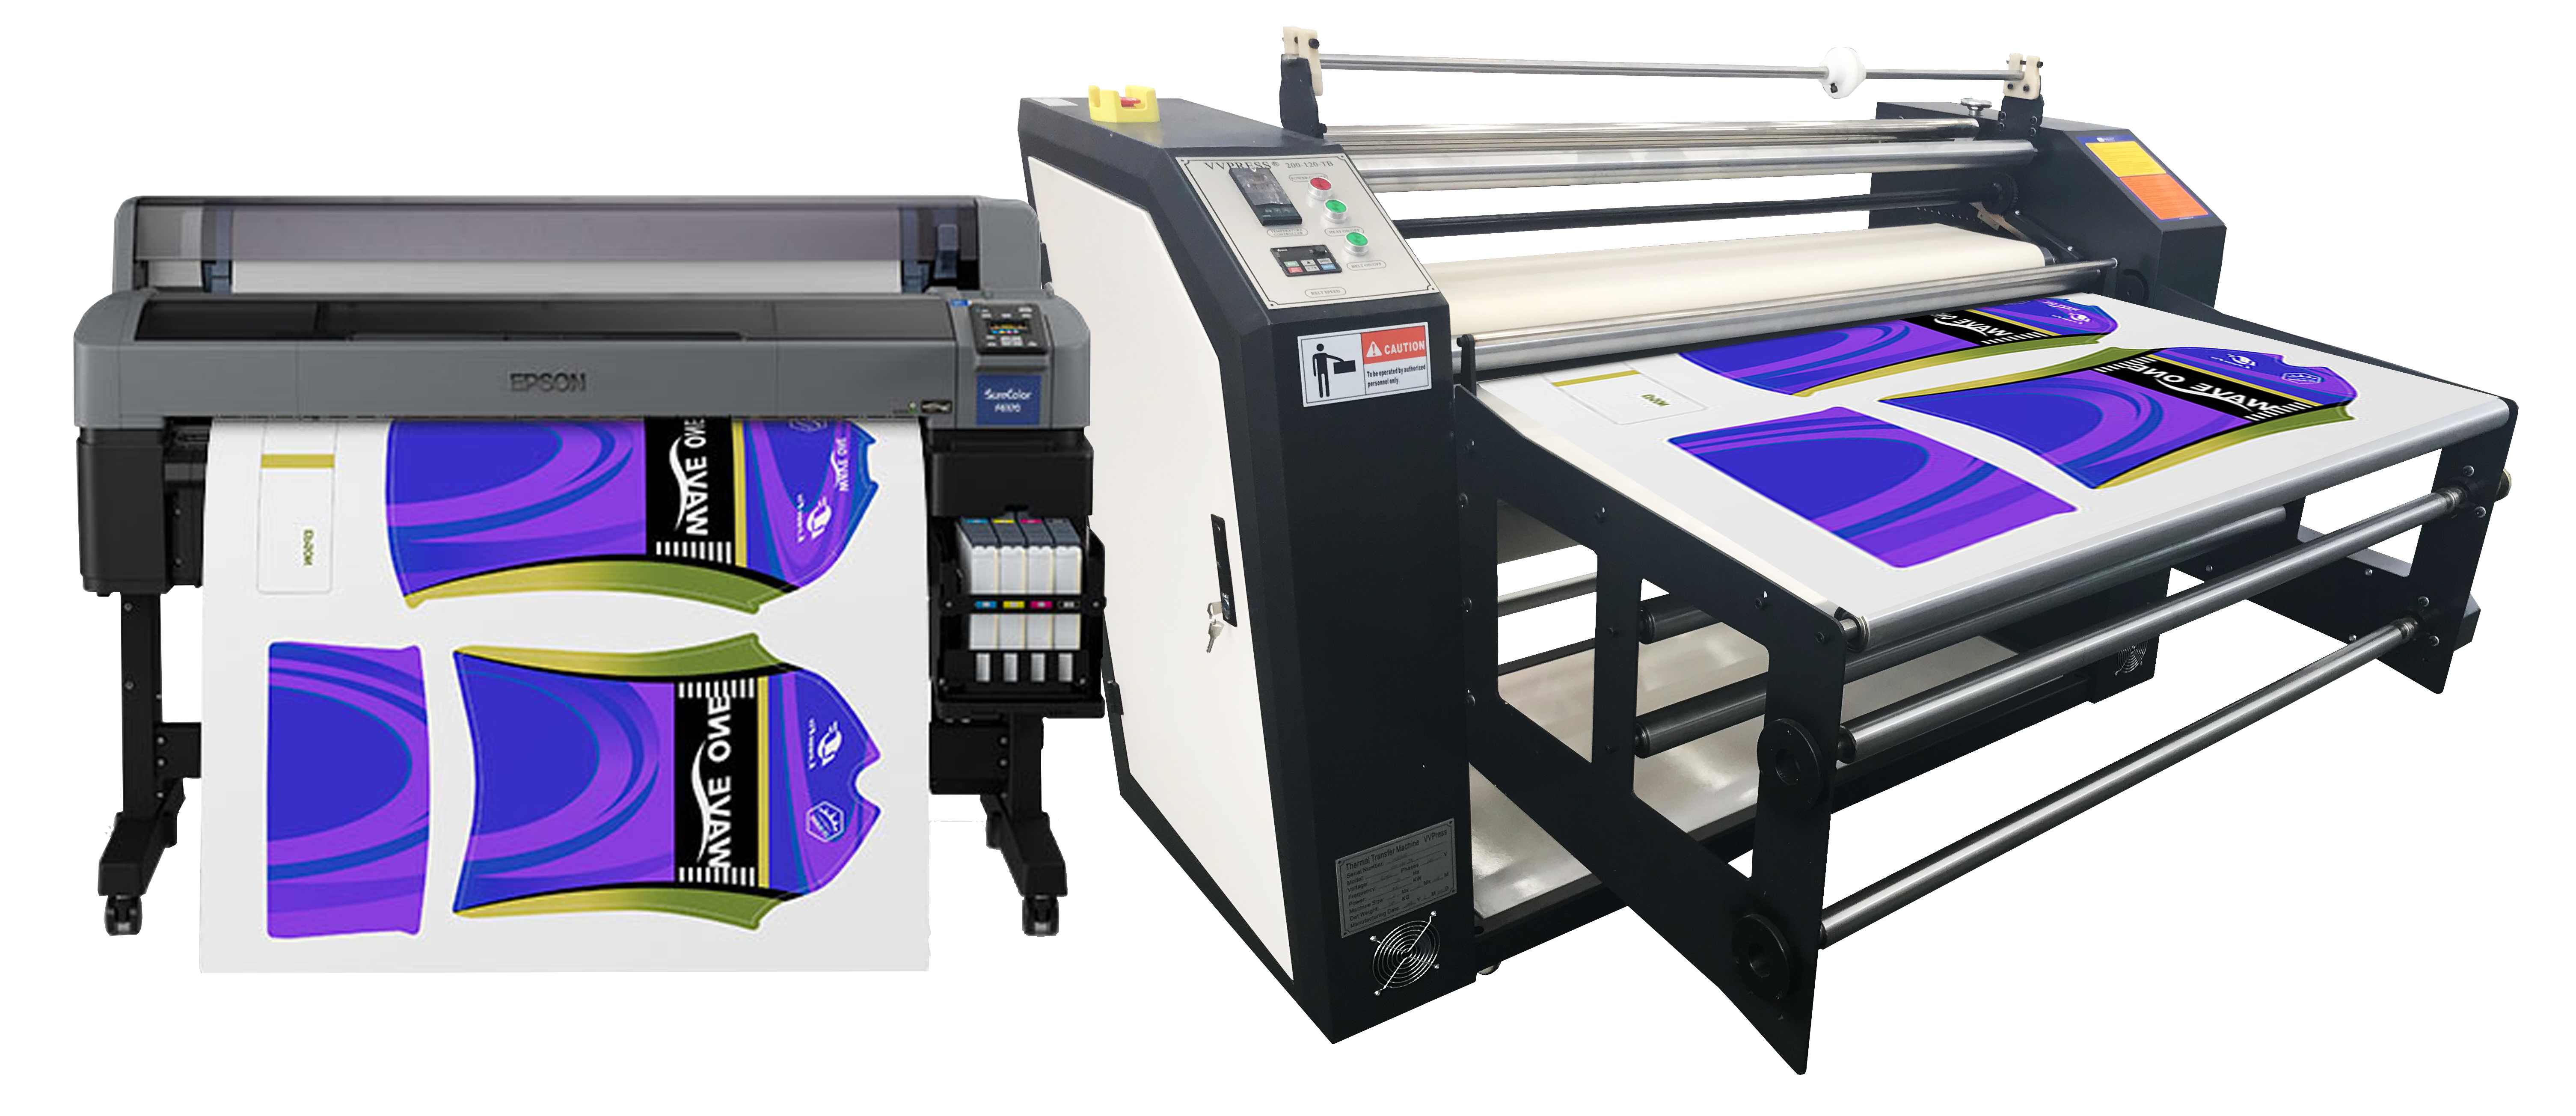 Epson Dye Sublimation Printers | Equipment Zone